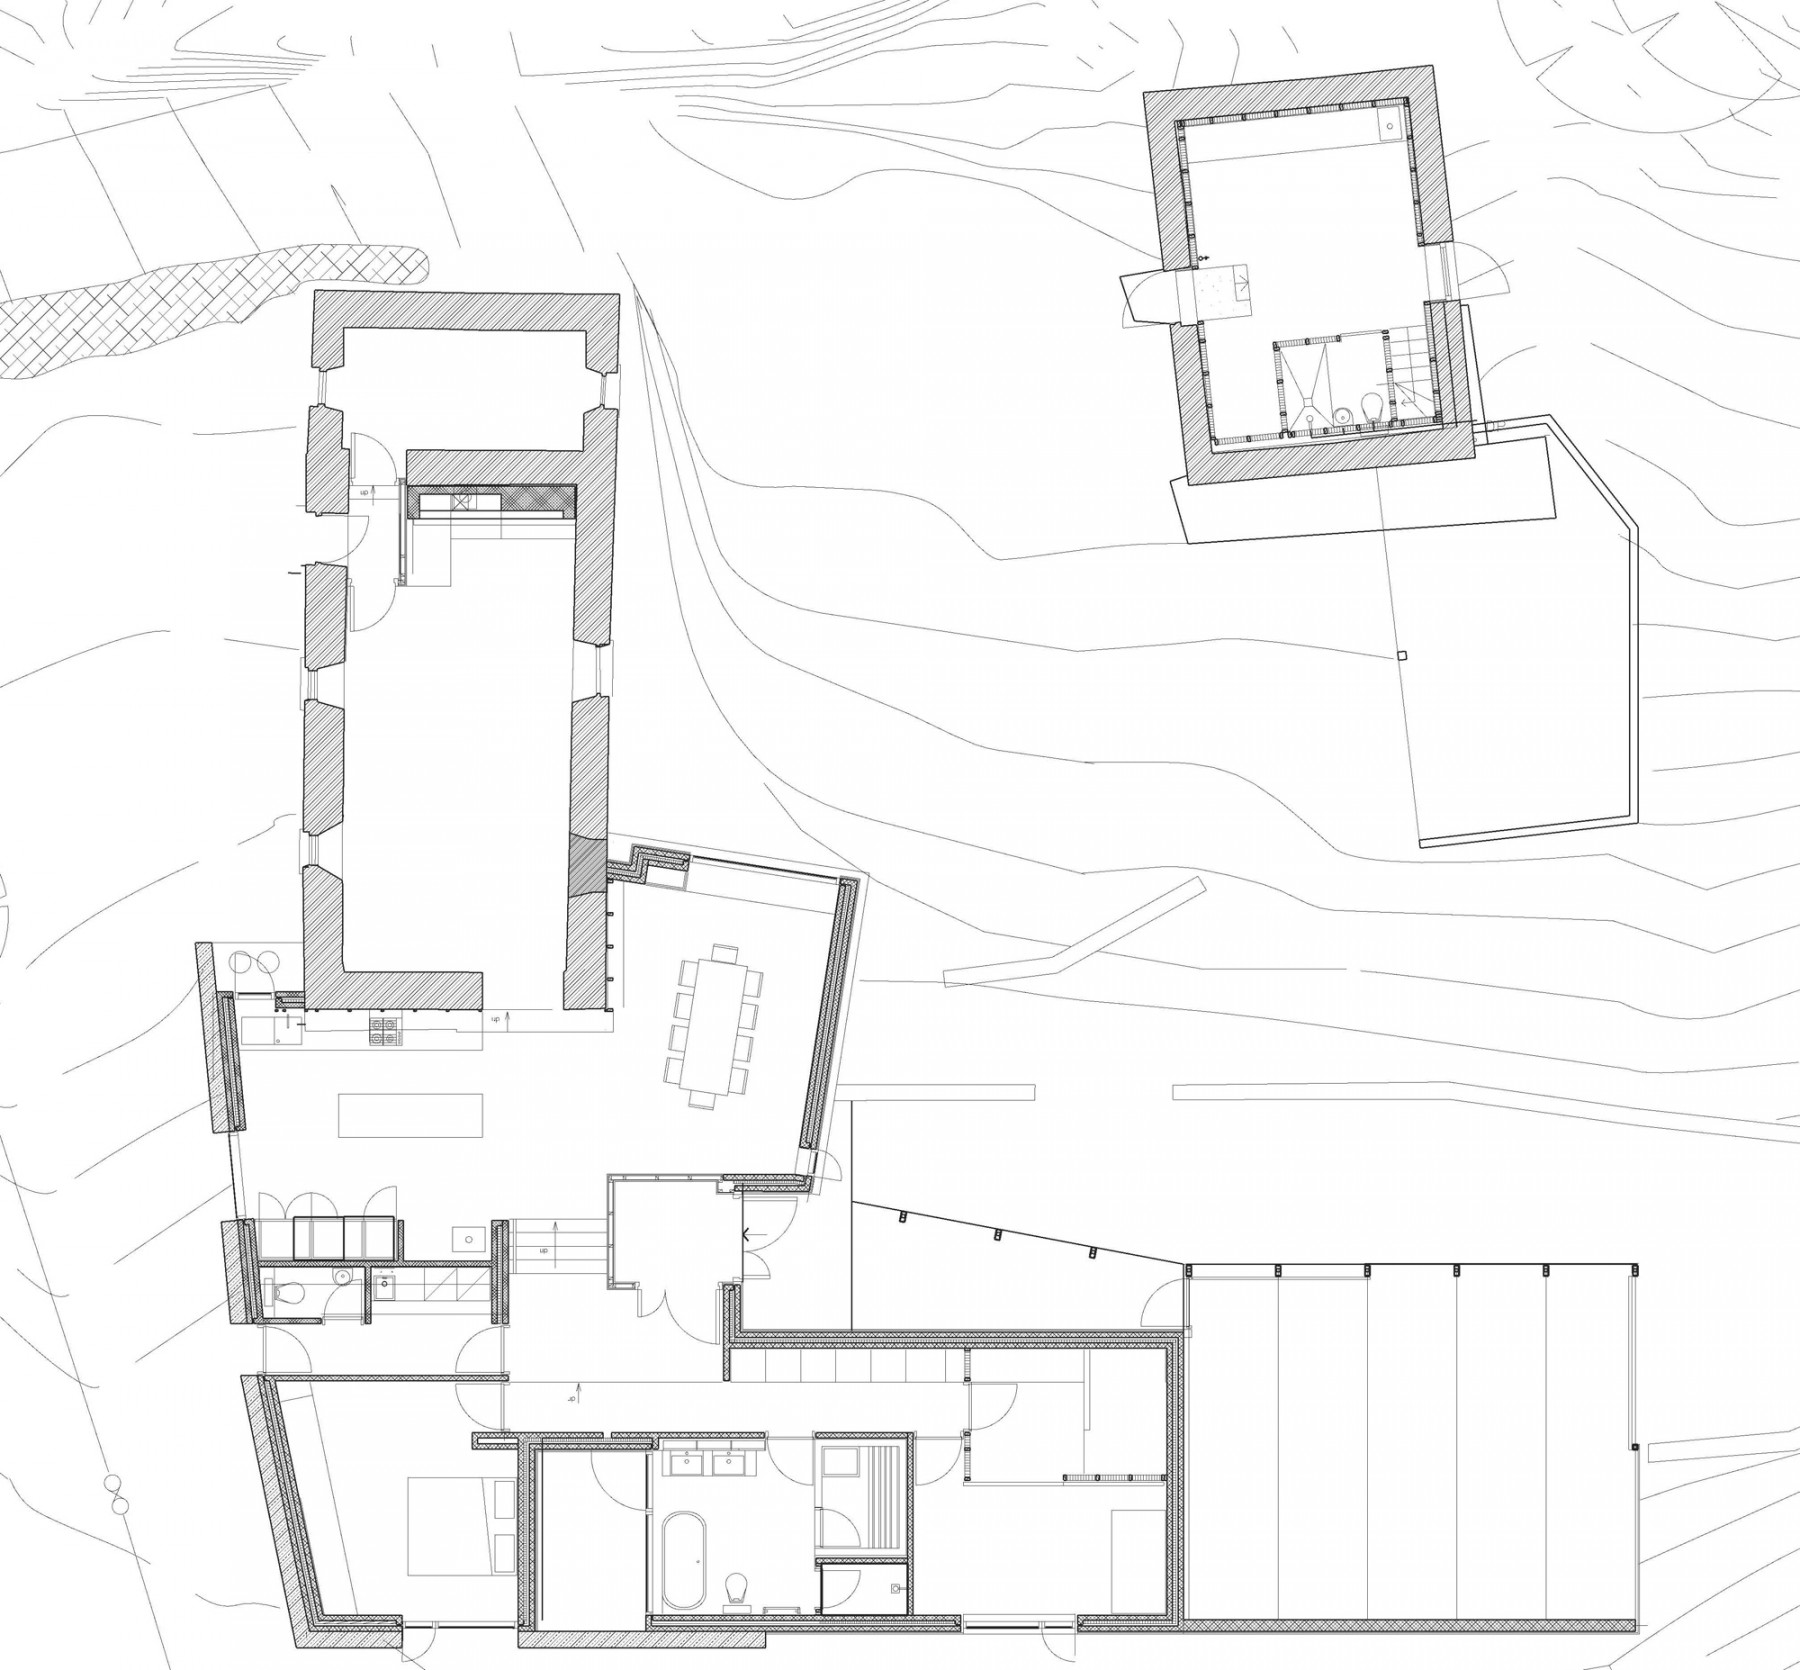 FaHa-Farm-house-barn-County-Clare-Ireland-residential-home-rural-timber-zinc-Jamie-Fobert-Architects-site-plan